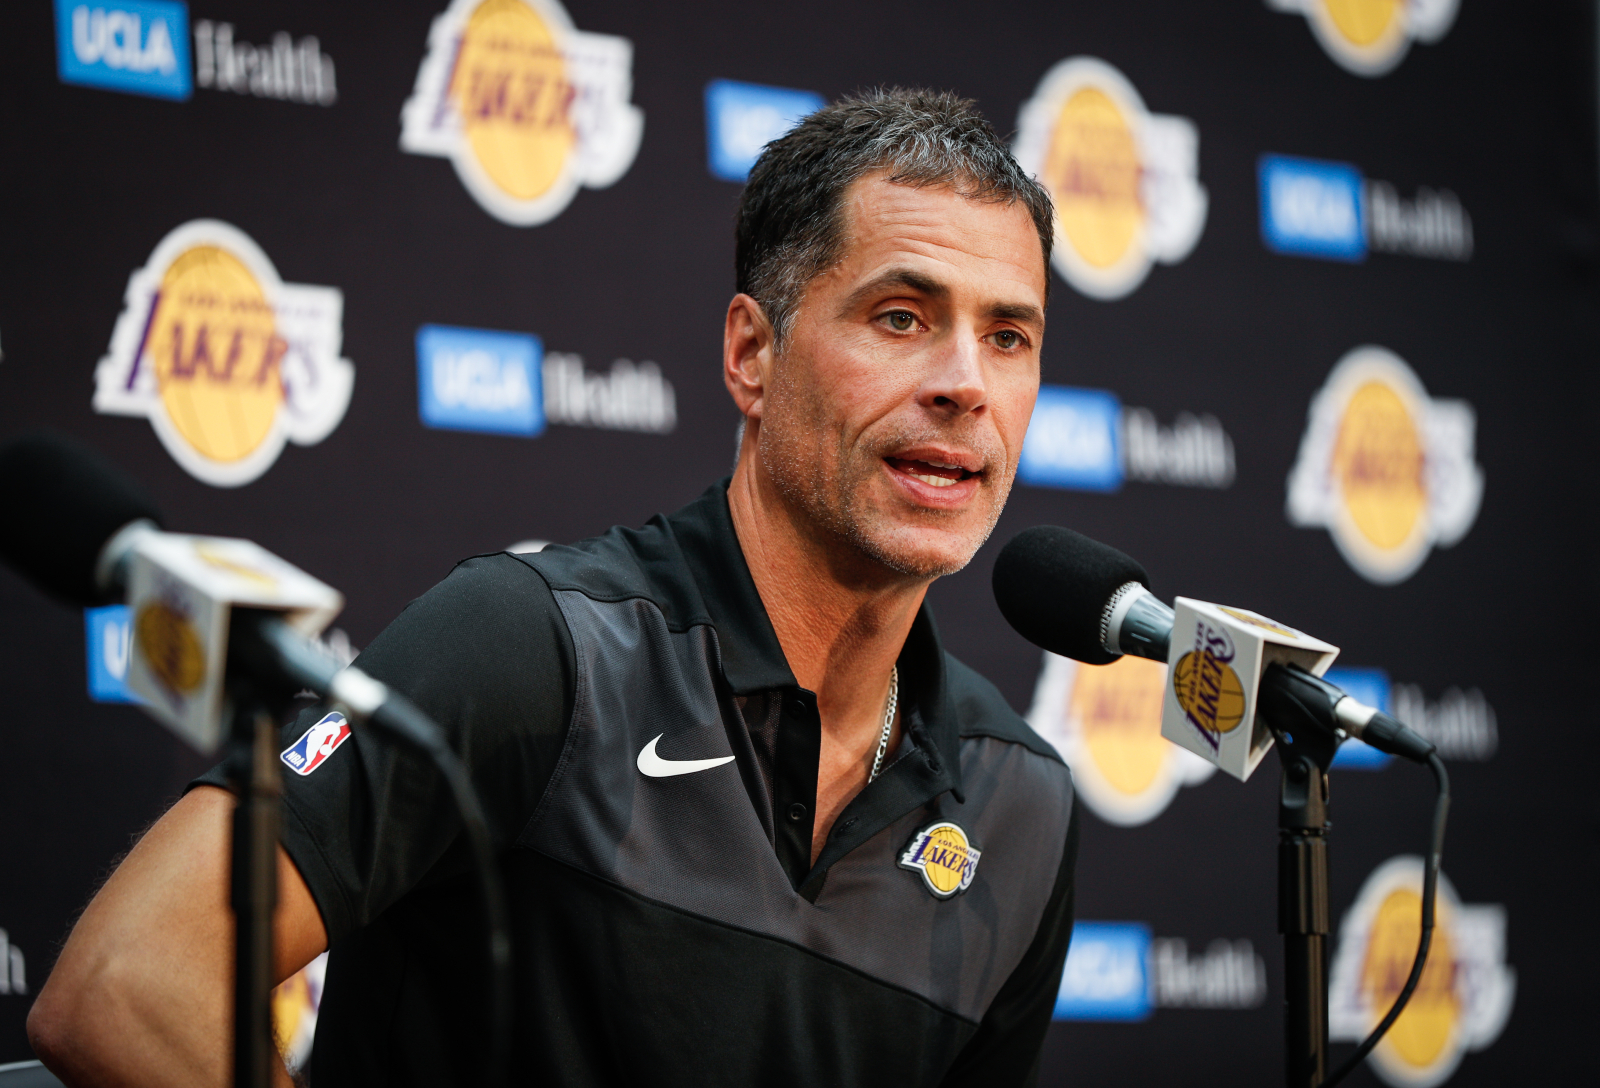 Lakers general manager Rob Pelinka has had a lot of success as an agent and a GM. However, despite his success, he still mops up sweat.